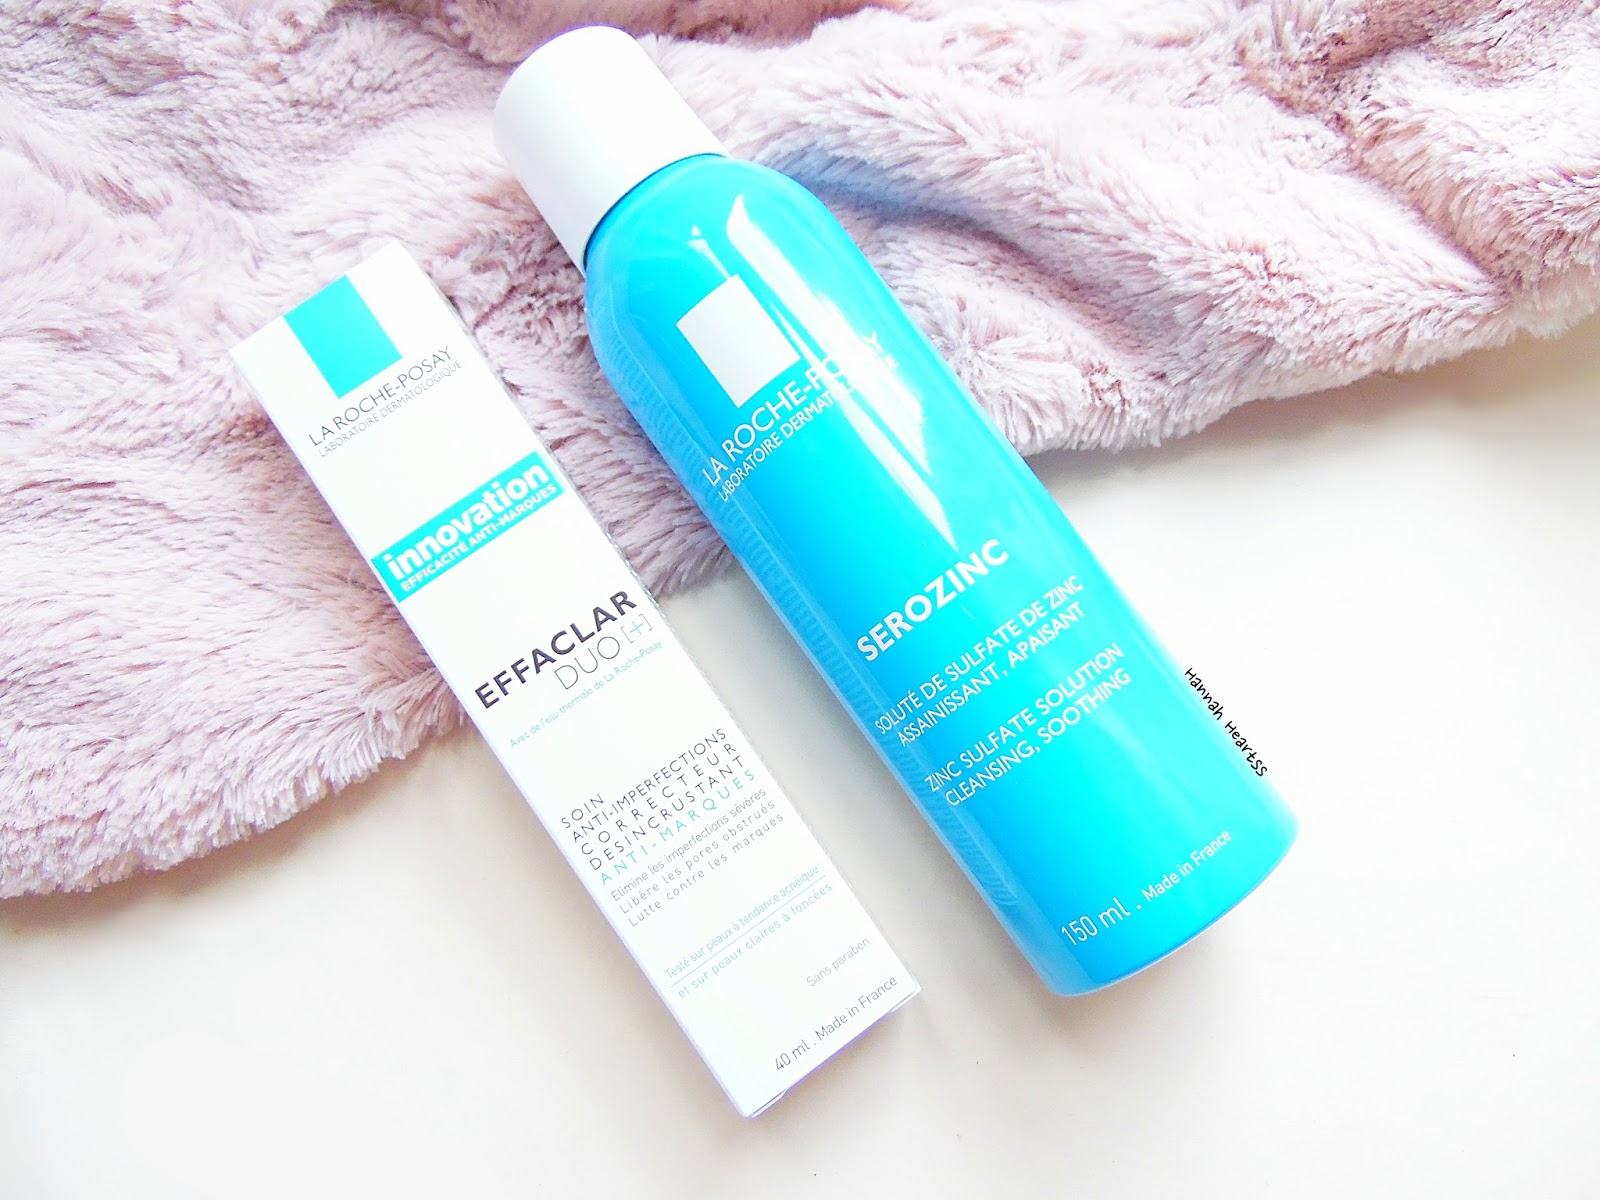 La Roche Posay Black Friday Deal